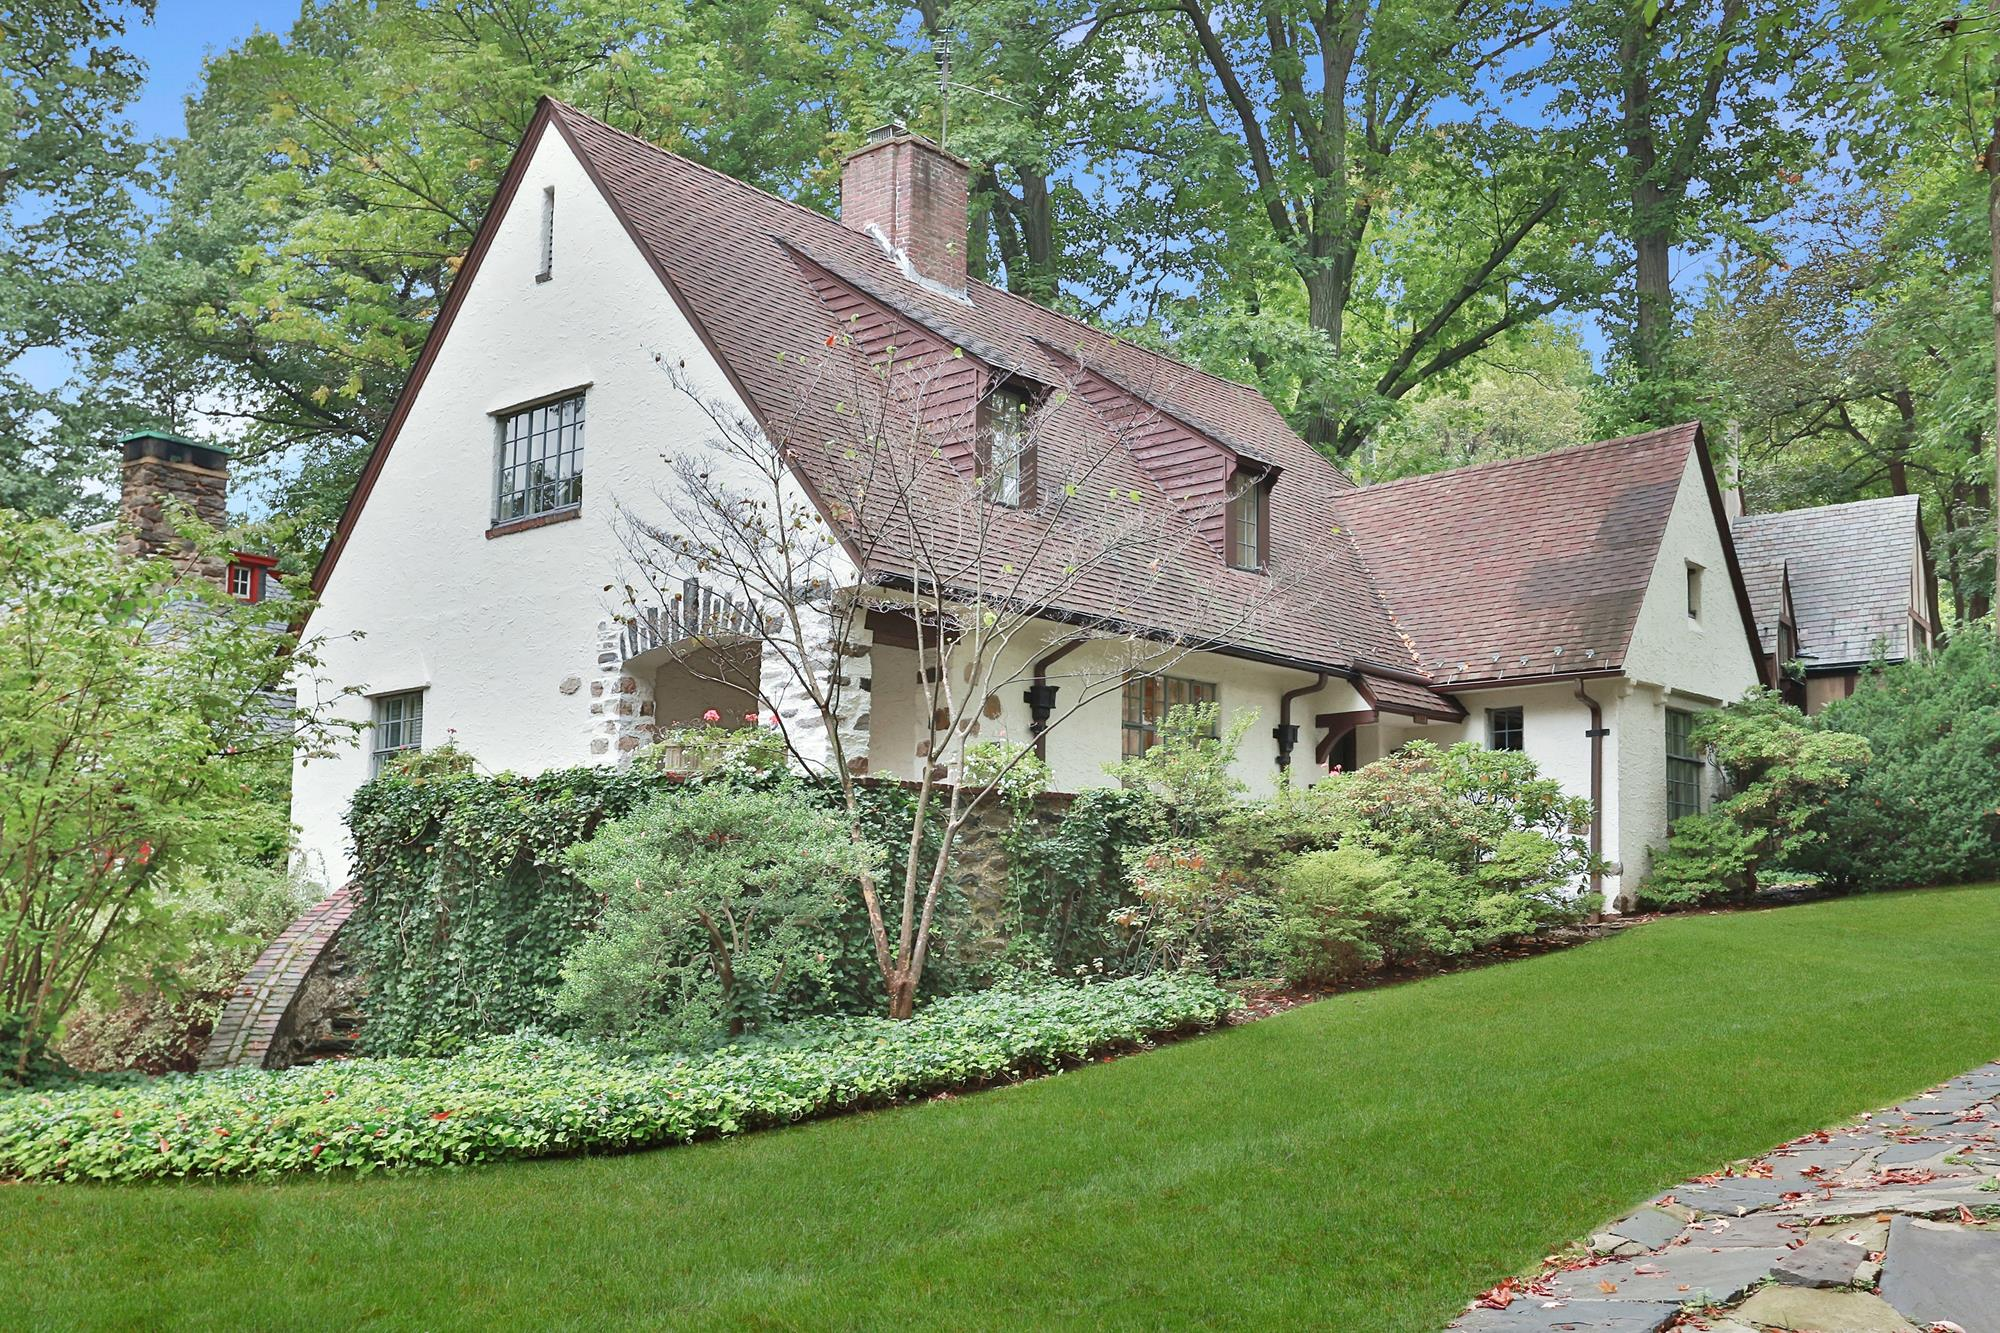 Picturesque 1920s 5-Bd. House with Patios & Garden